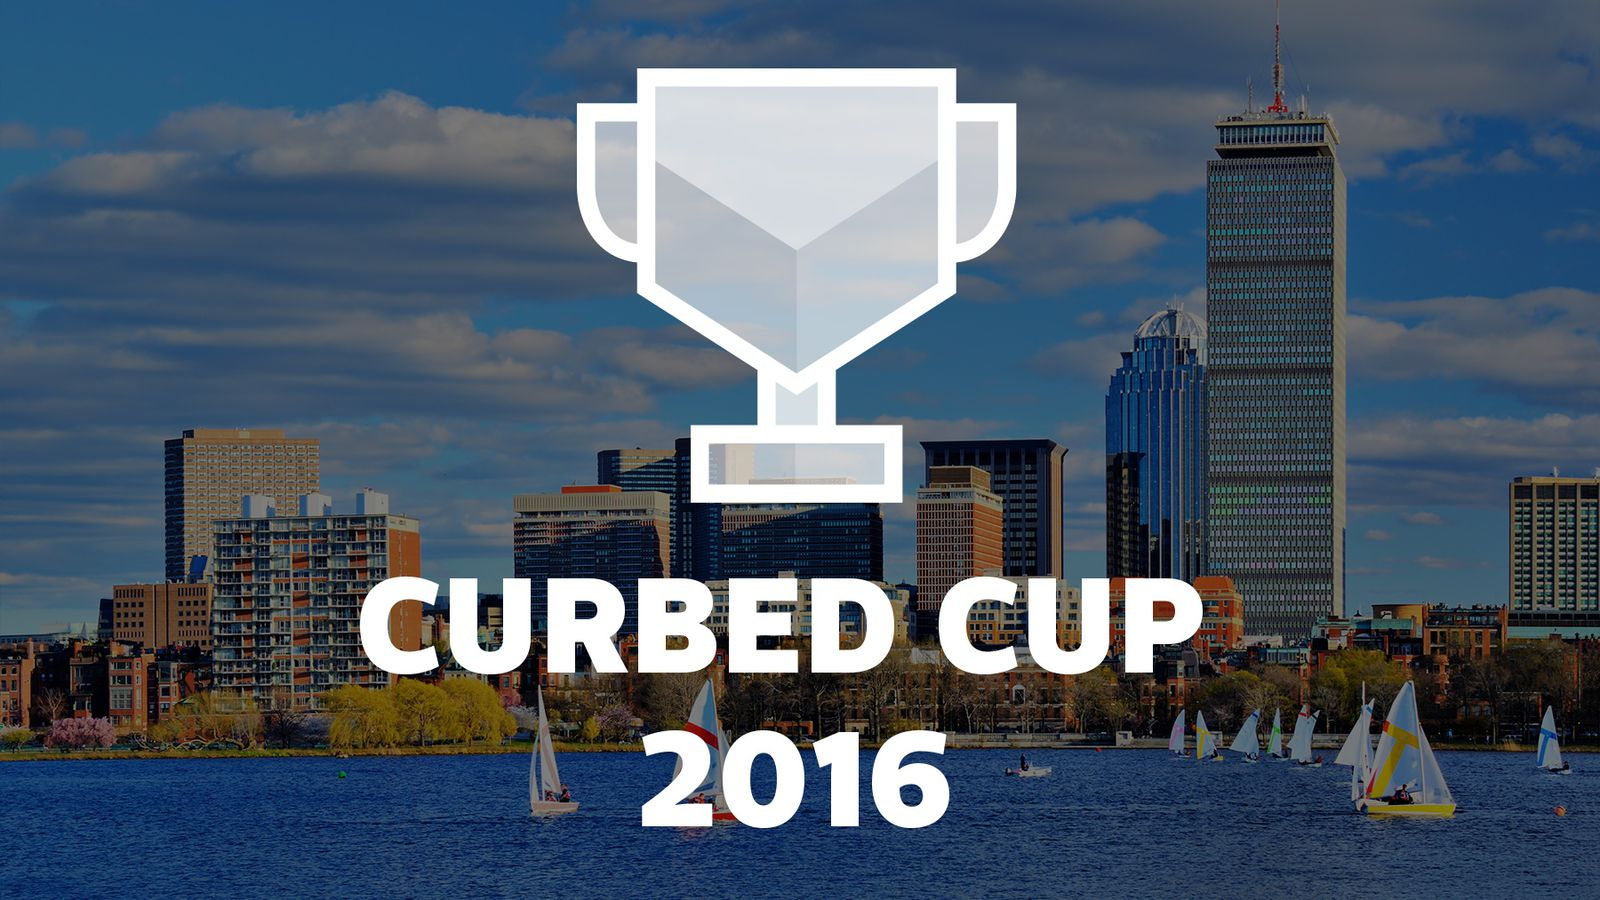 the curbed cup neighborhood of the year is assembly row curbed